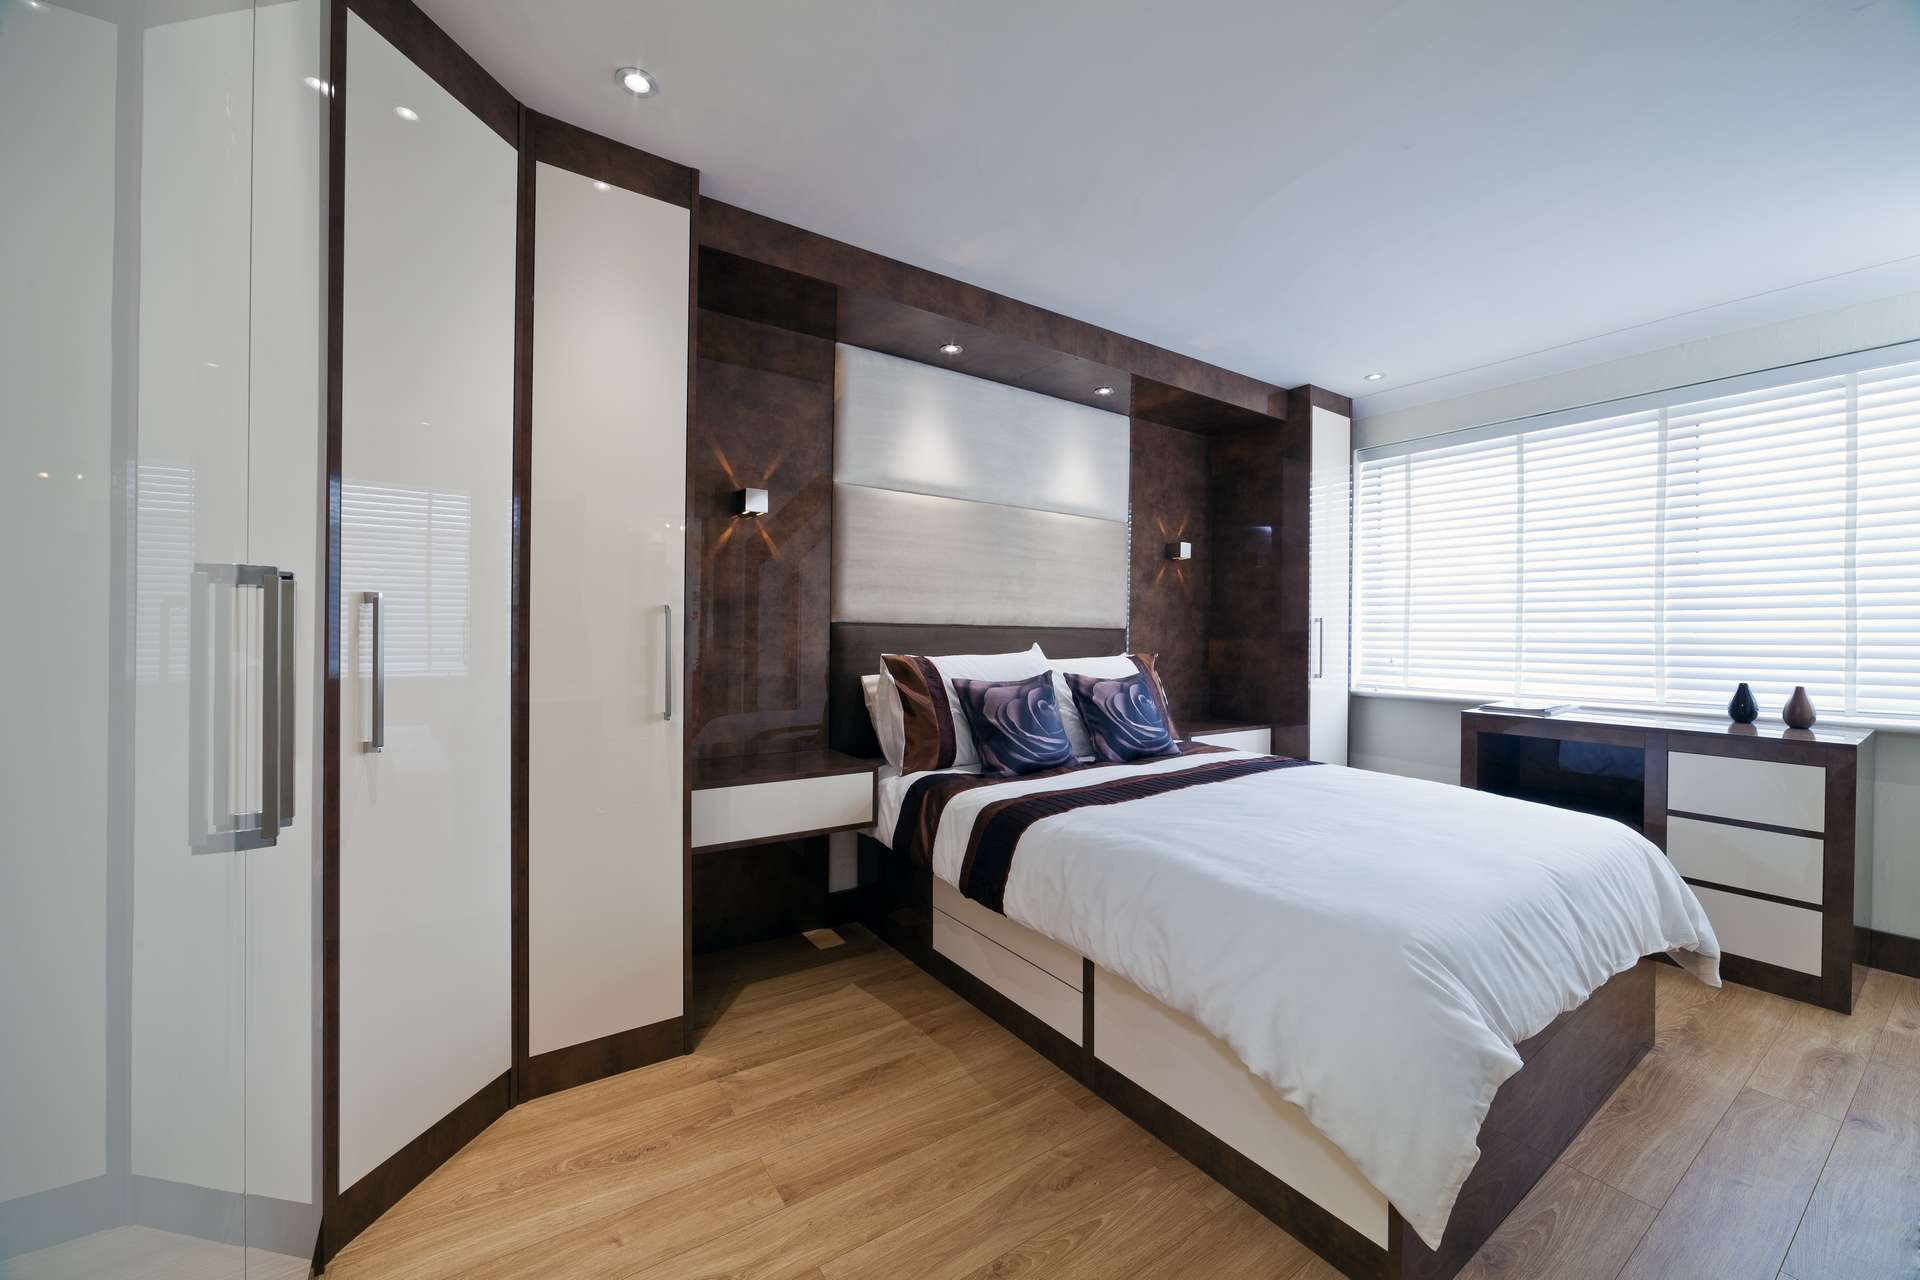 Modern design bed in high gloss lacquered finish with hinged door wardrobes